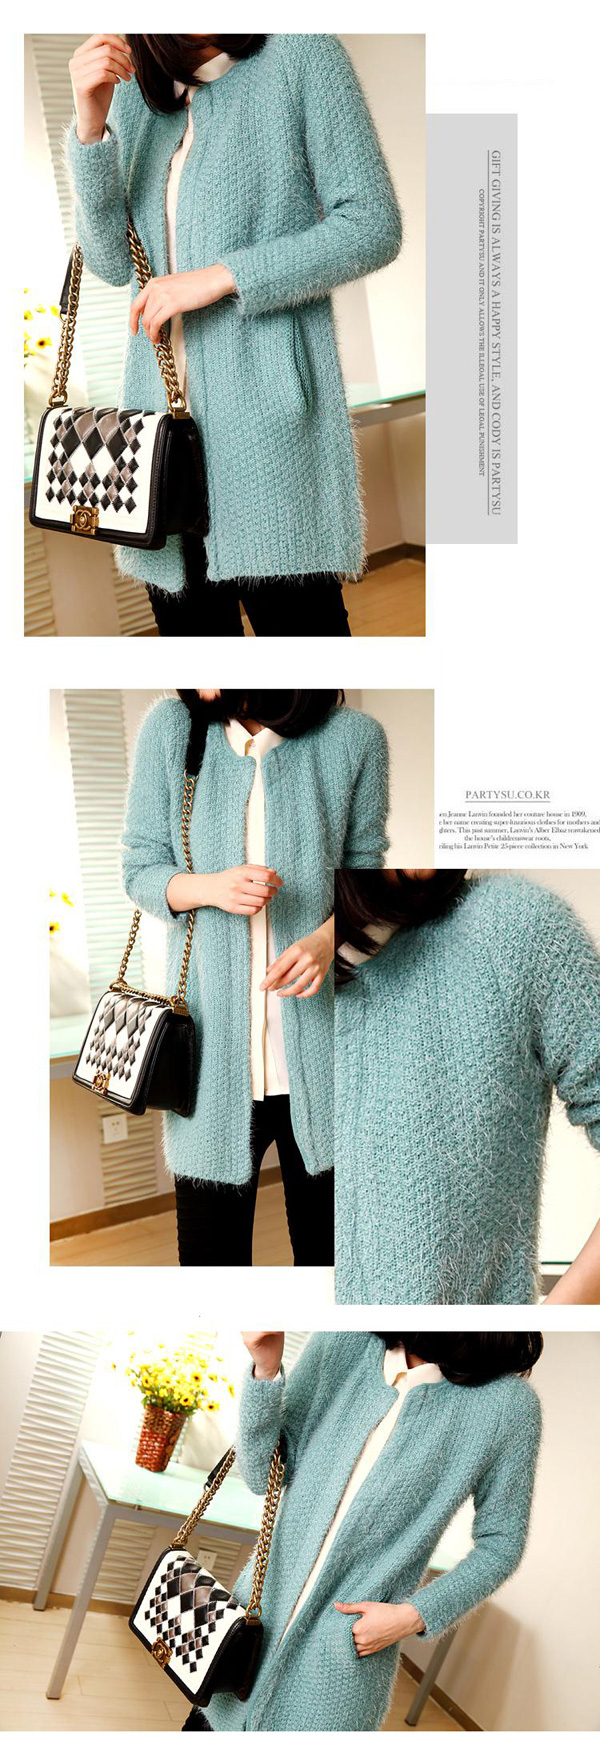 womens-mohair-knitting-cardigan-sweater-solid-color-korean-coat-d1